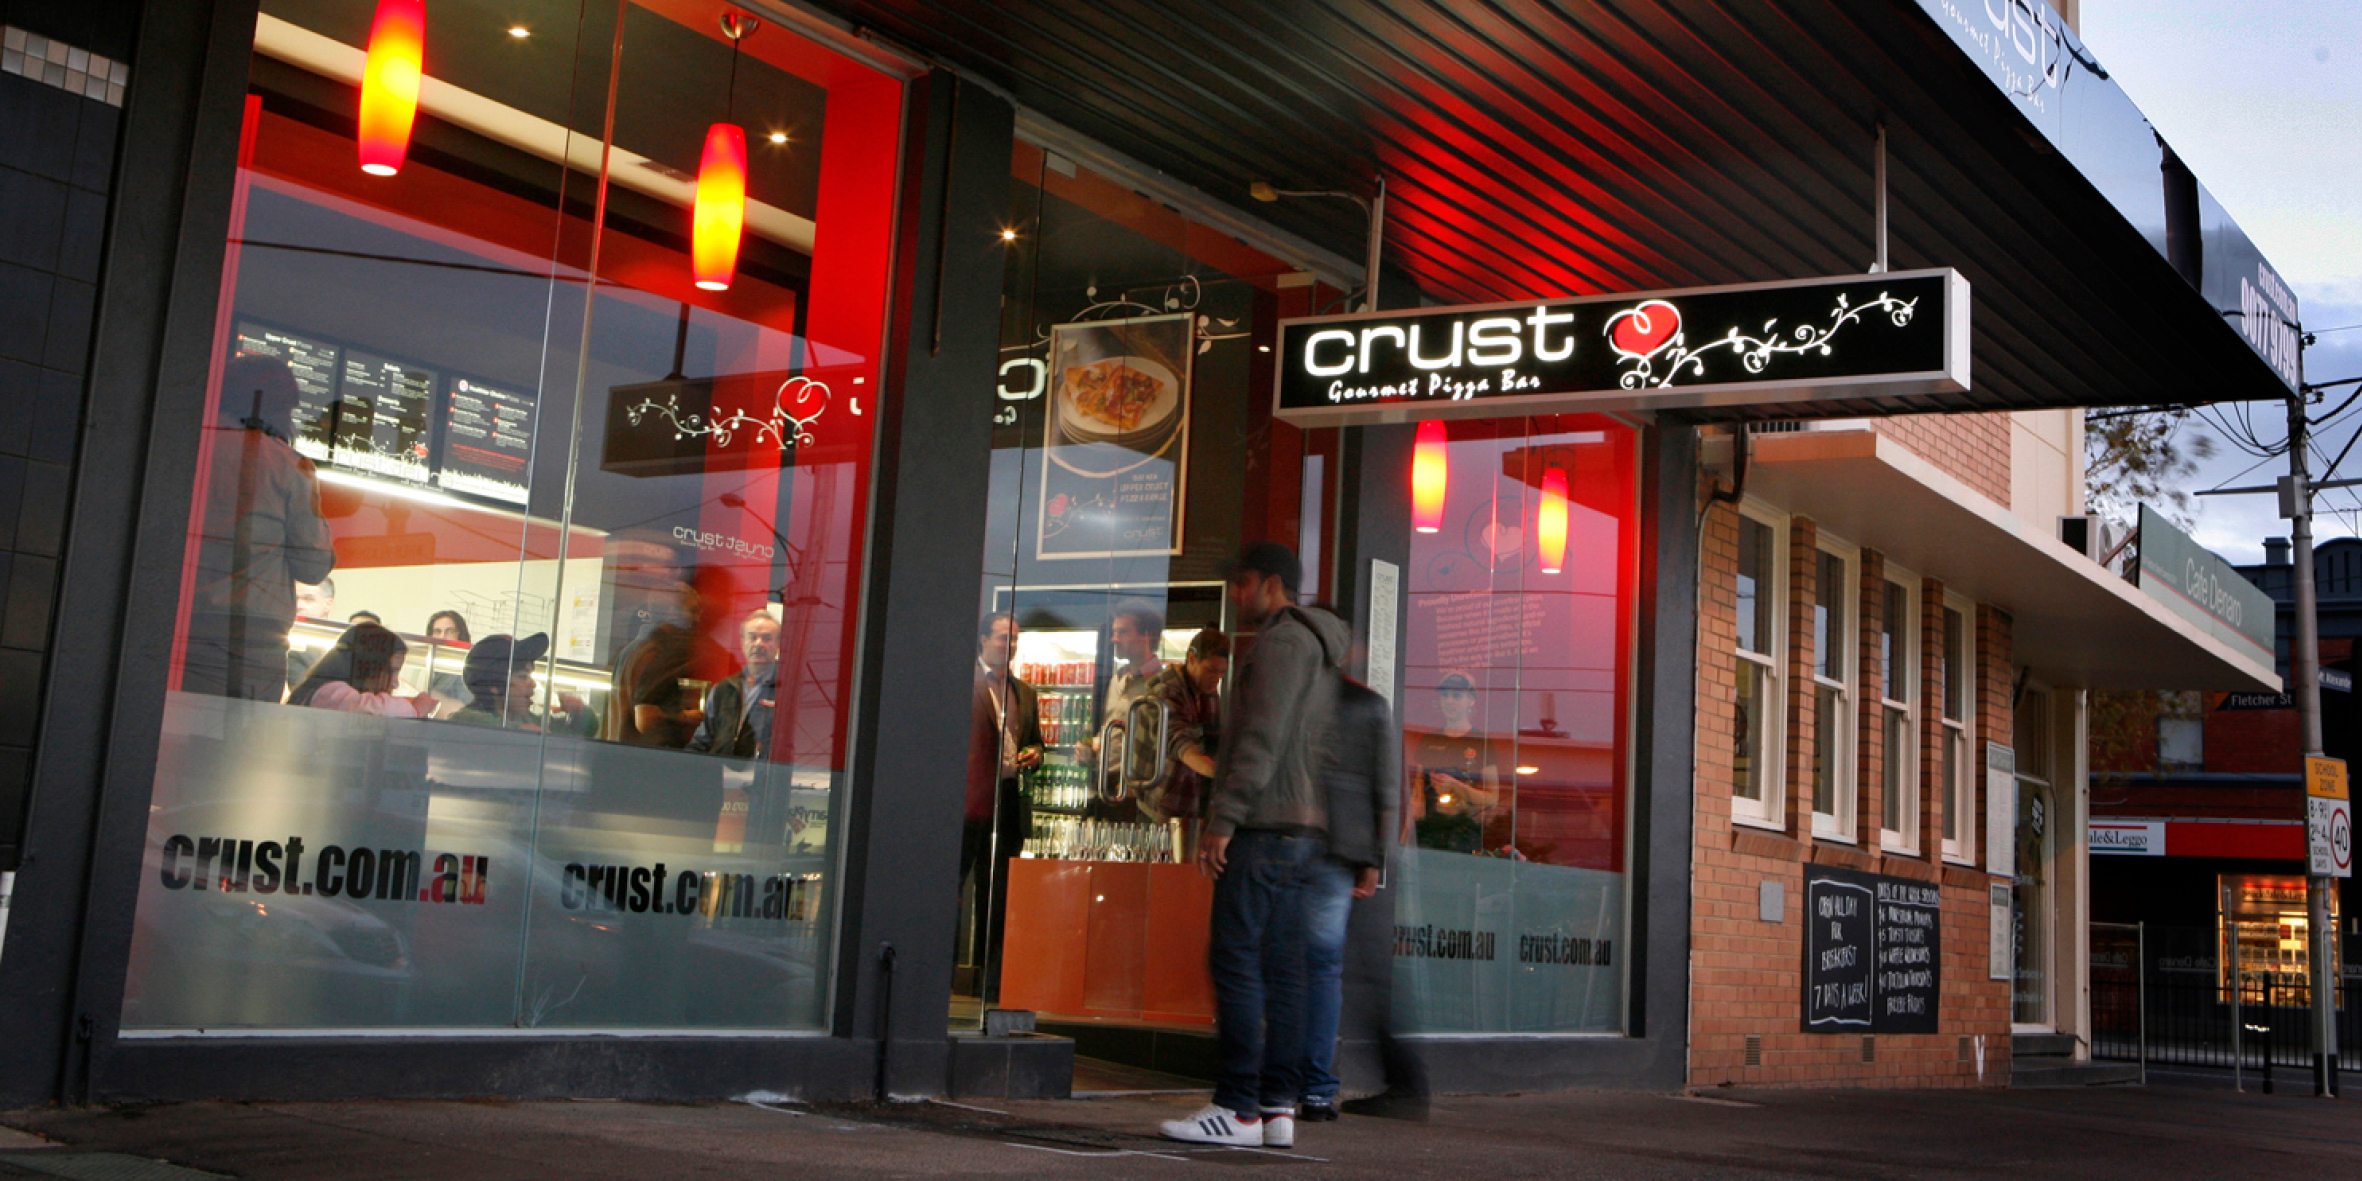 Crust Gourmet Pizza Franchise Resale available in North Lakes, QLD! Enquire Now!